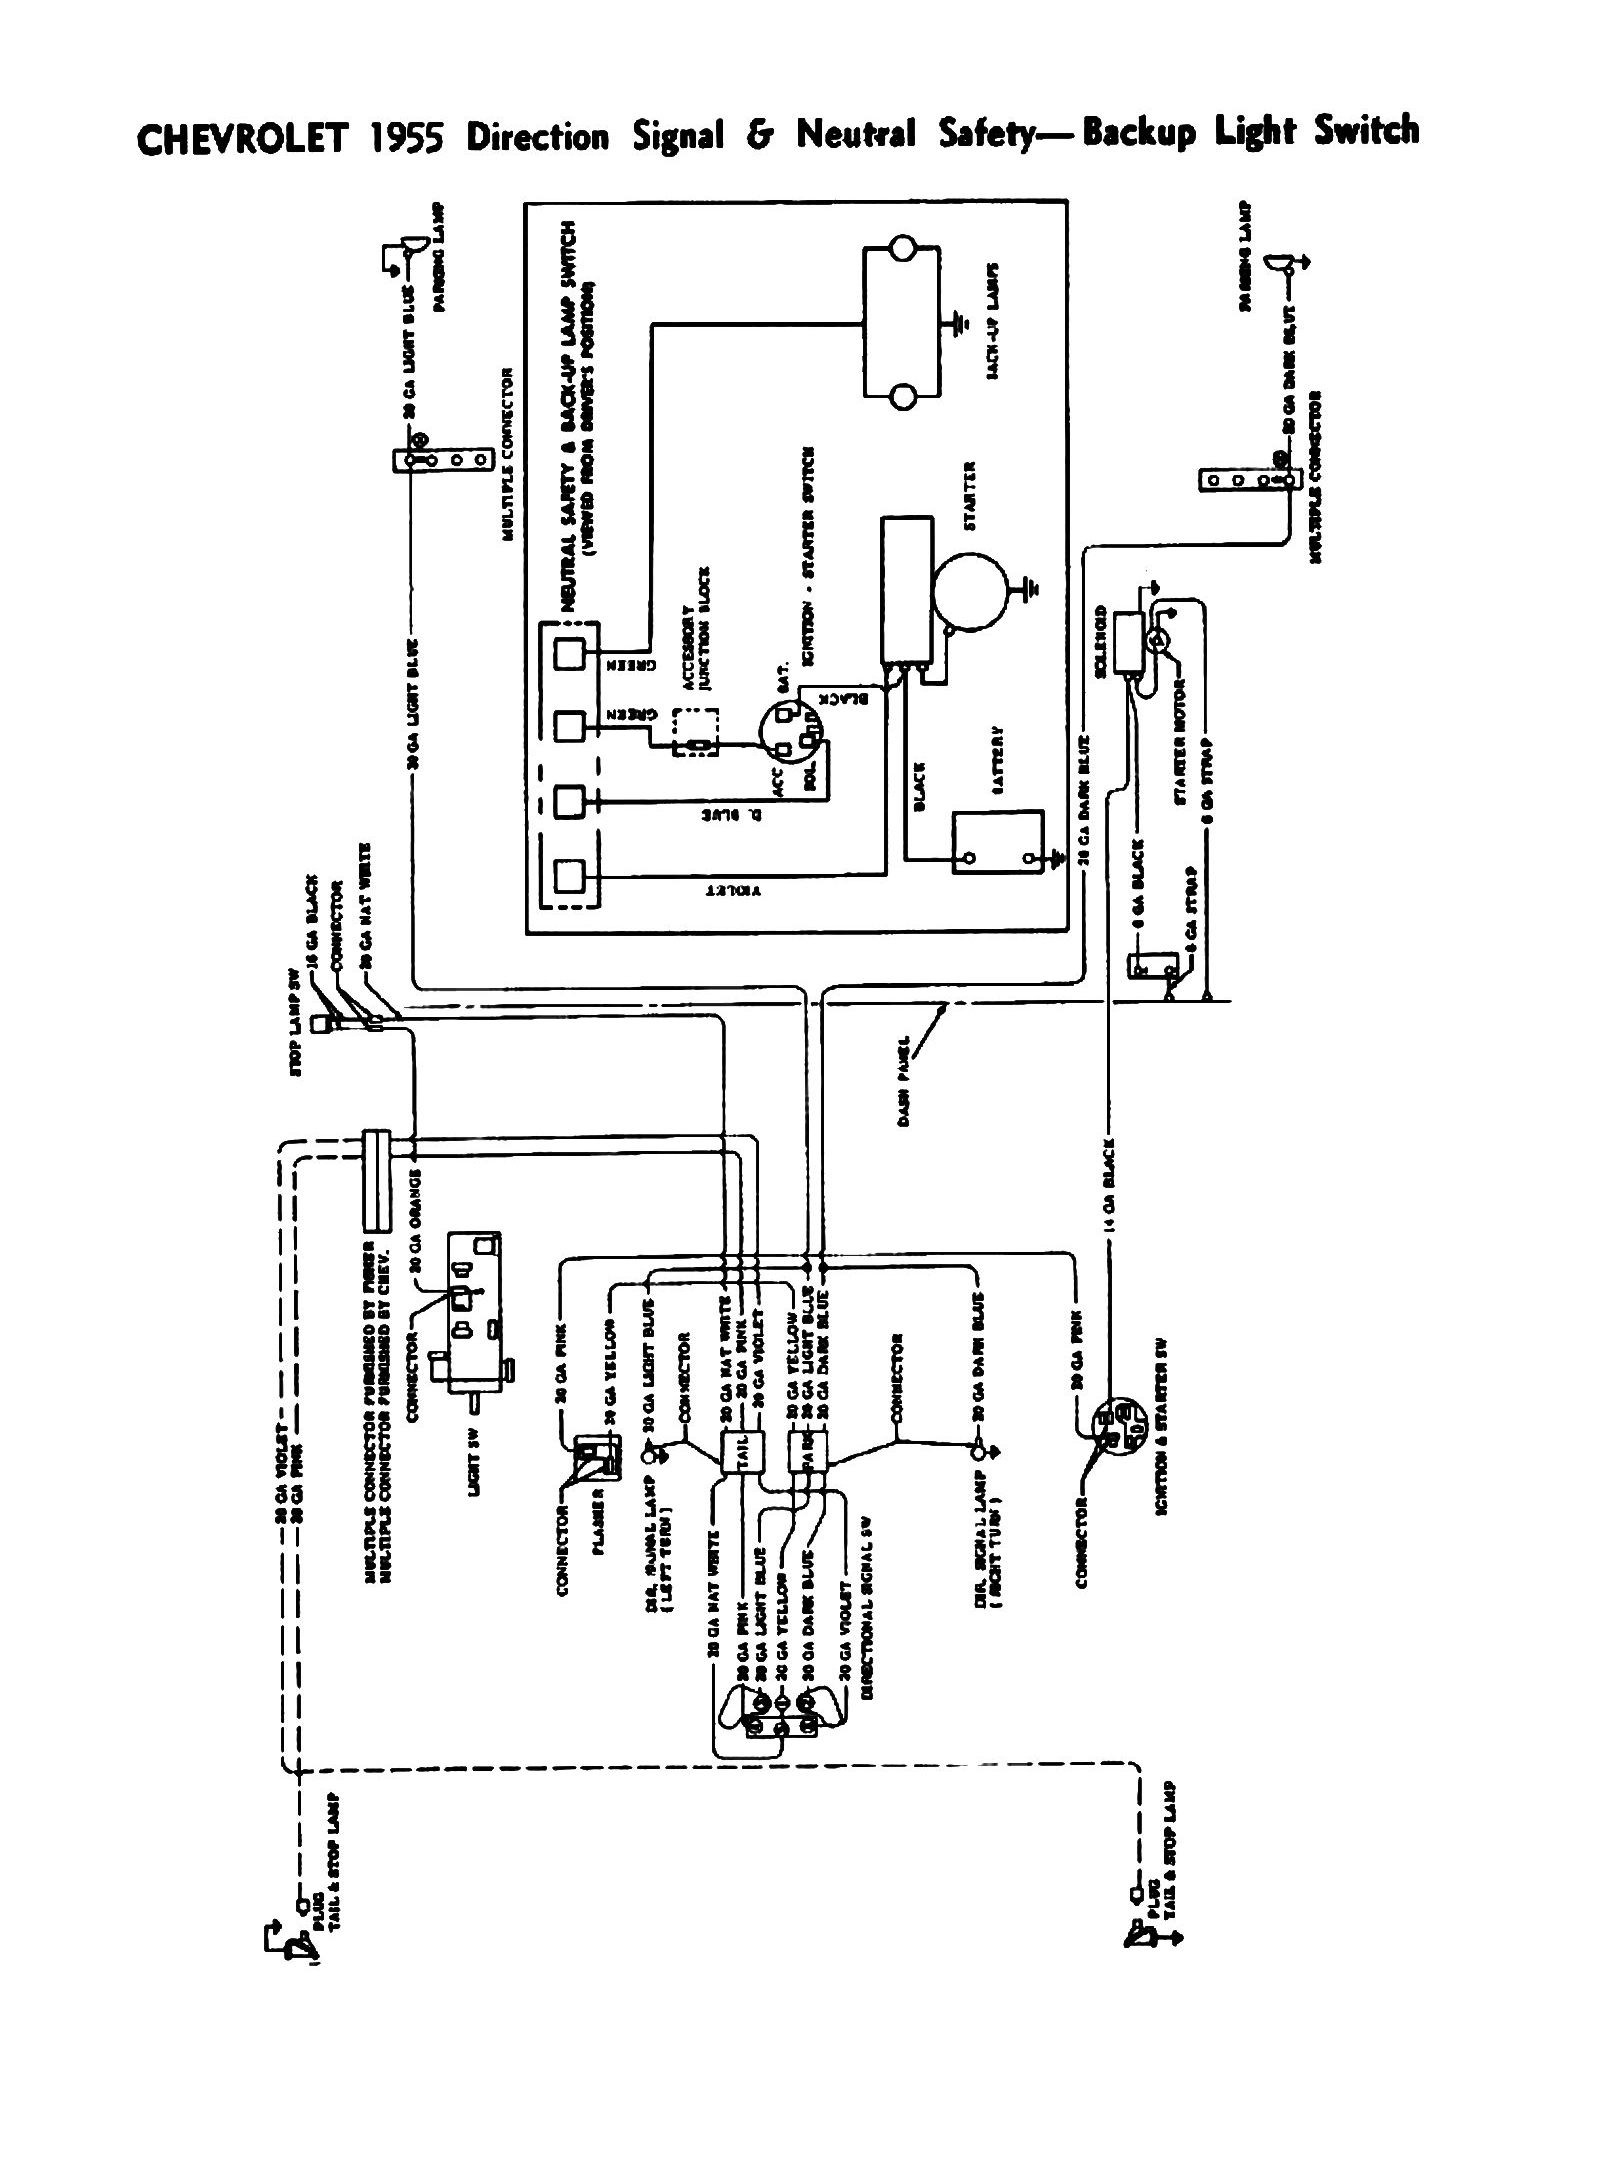 2001 chevy silverado tail light wiring diagram